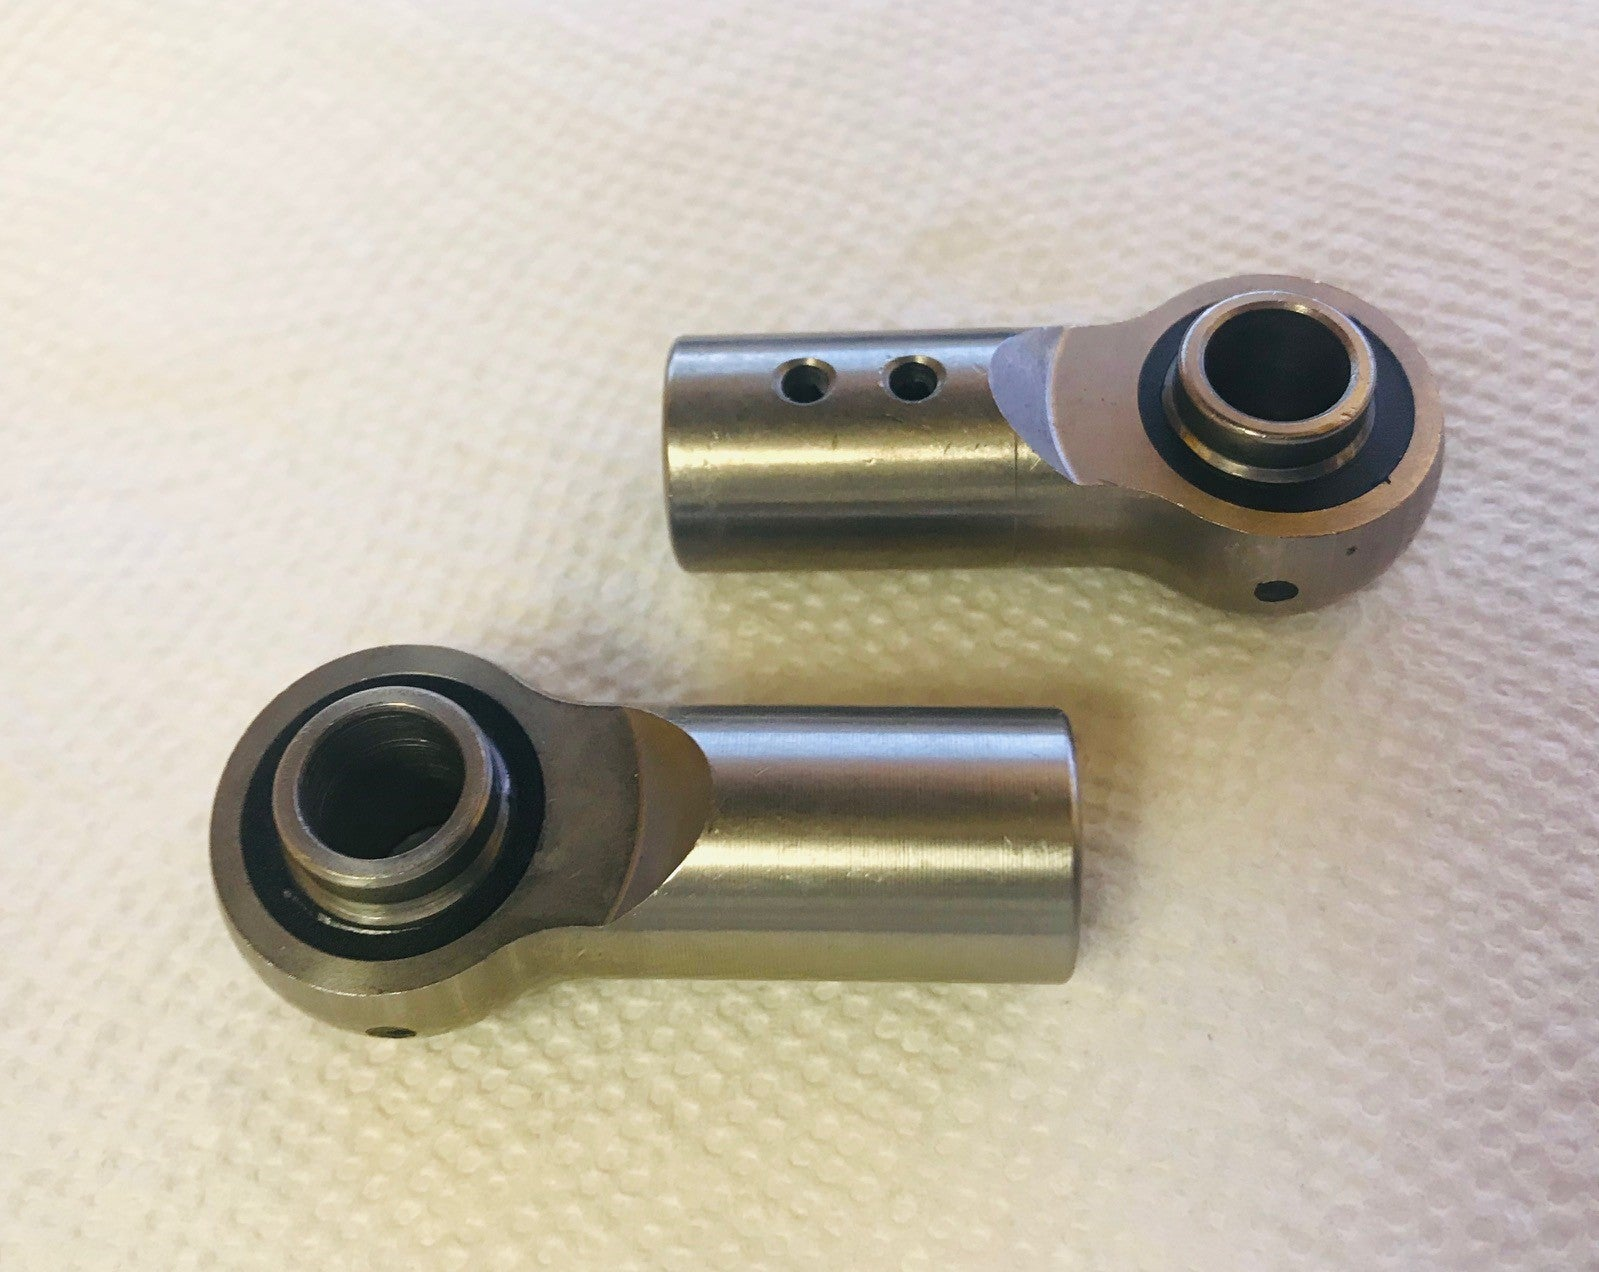 Panther Spherical Tie Rod Ends - Pair - shop.cmpgroup.net